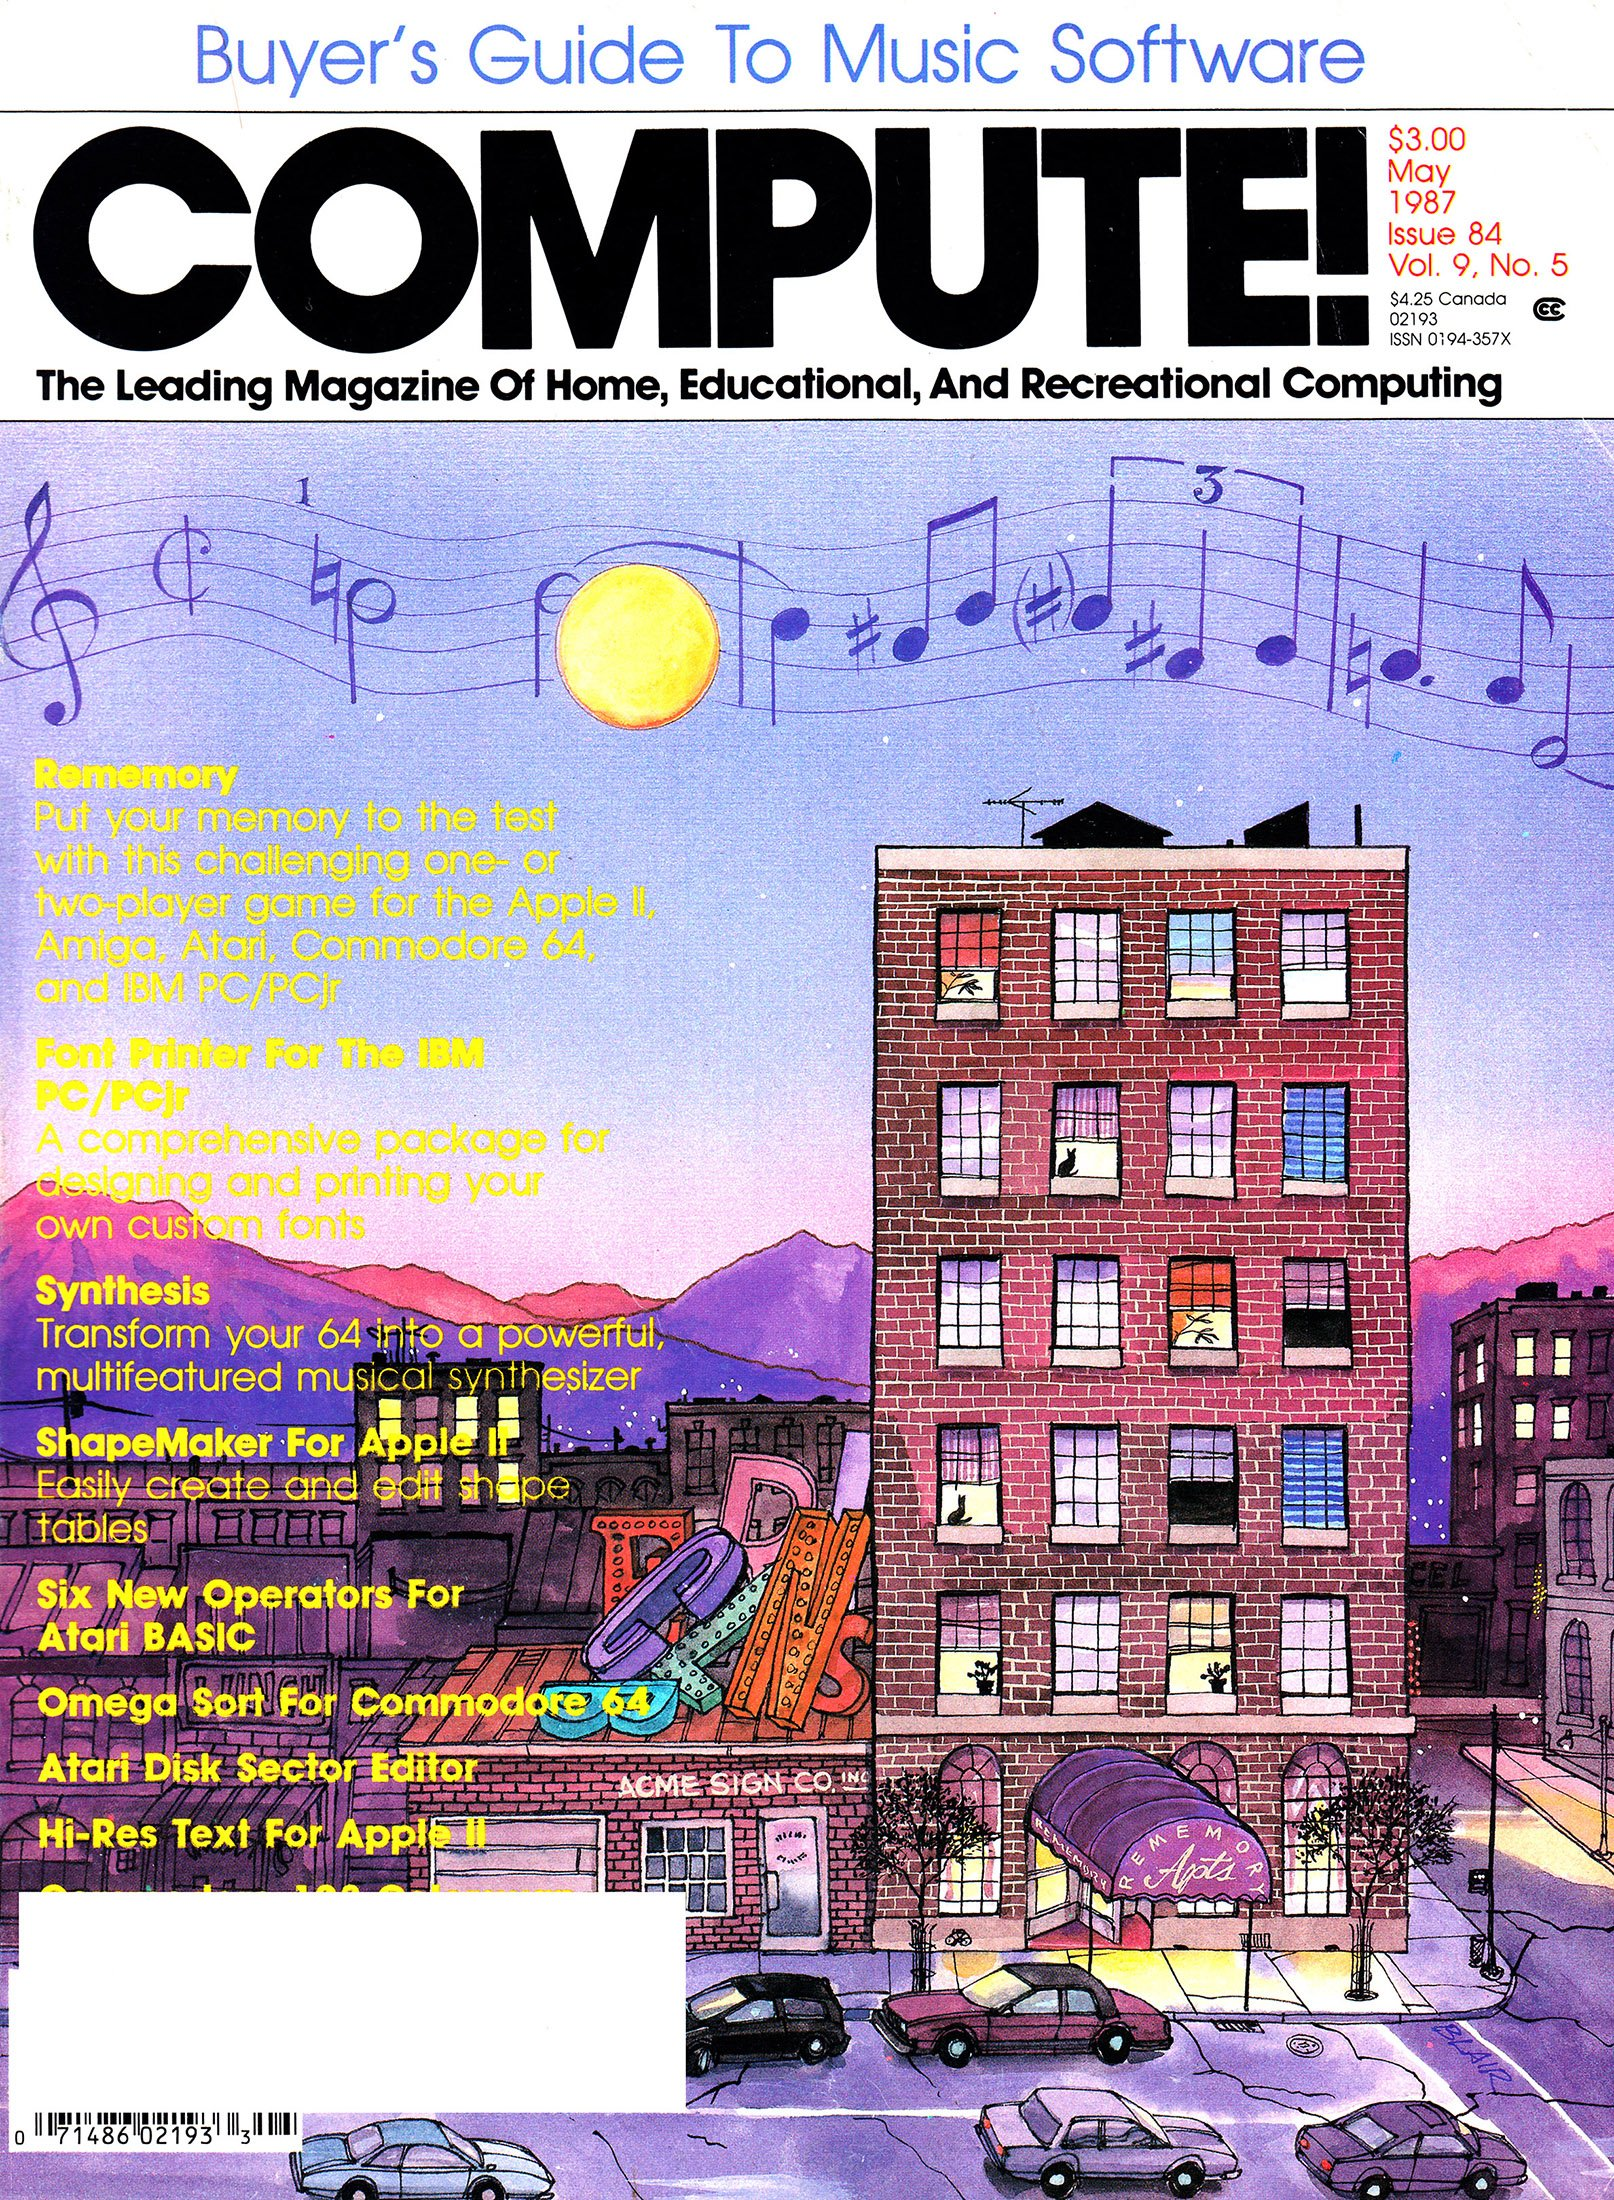 Compute! Issue 084 Vol. 9 No. 5 (May 1987)